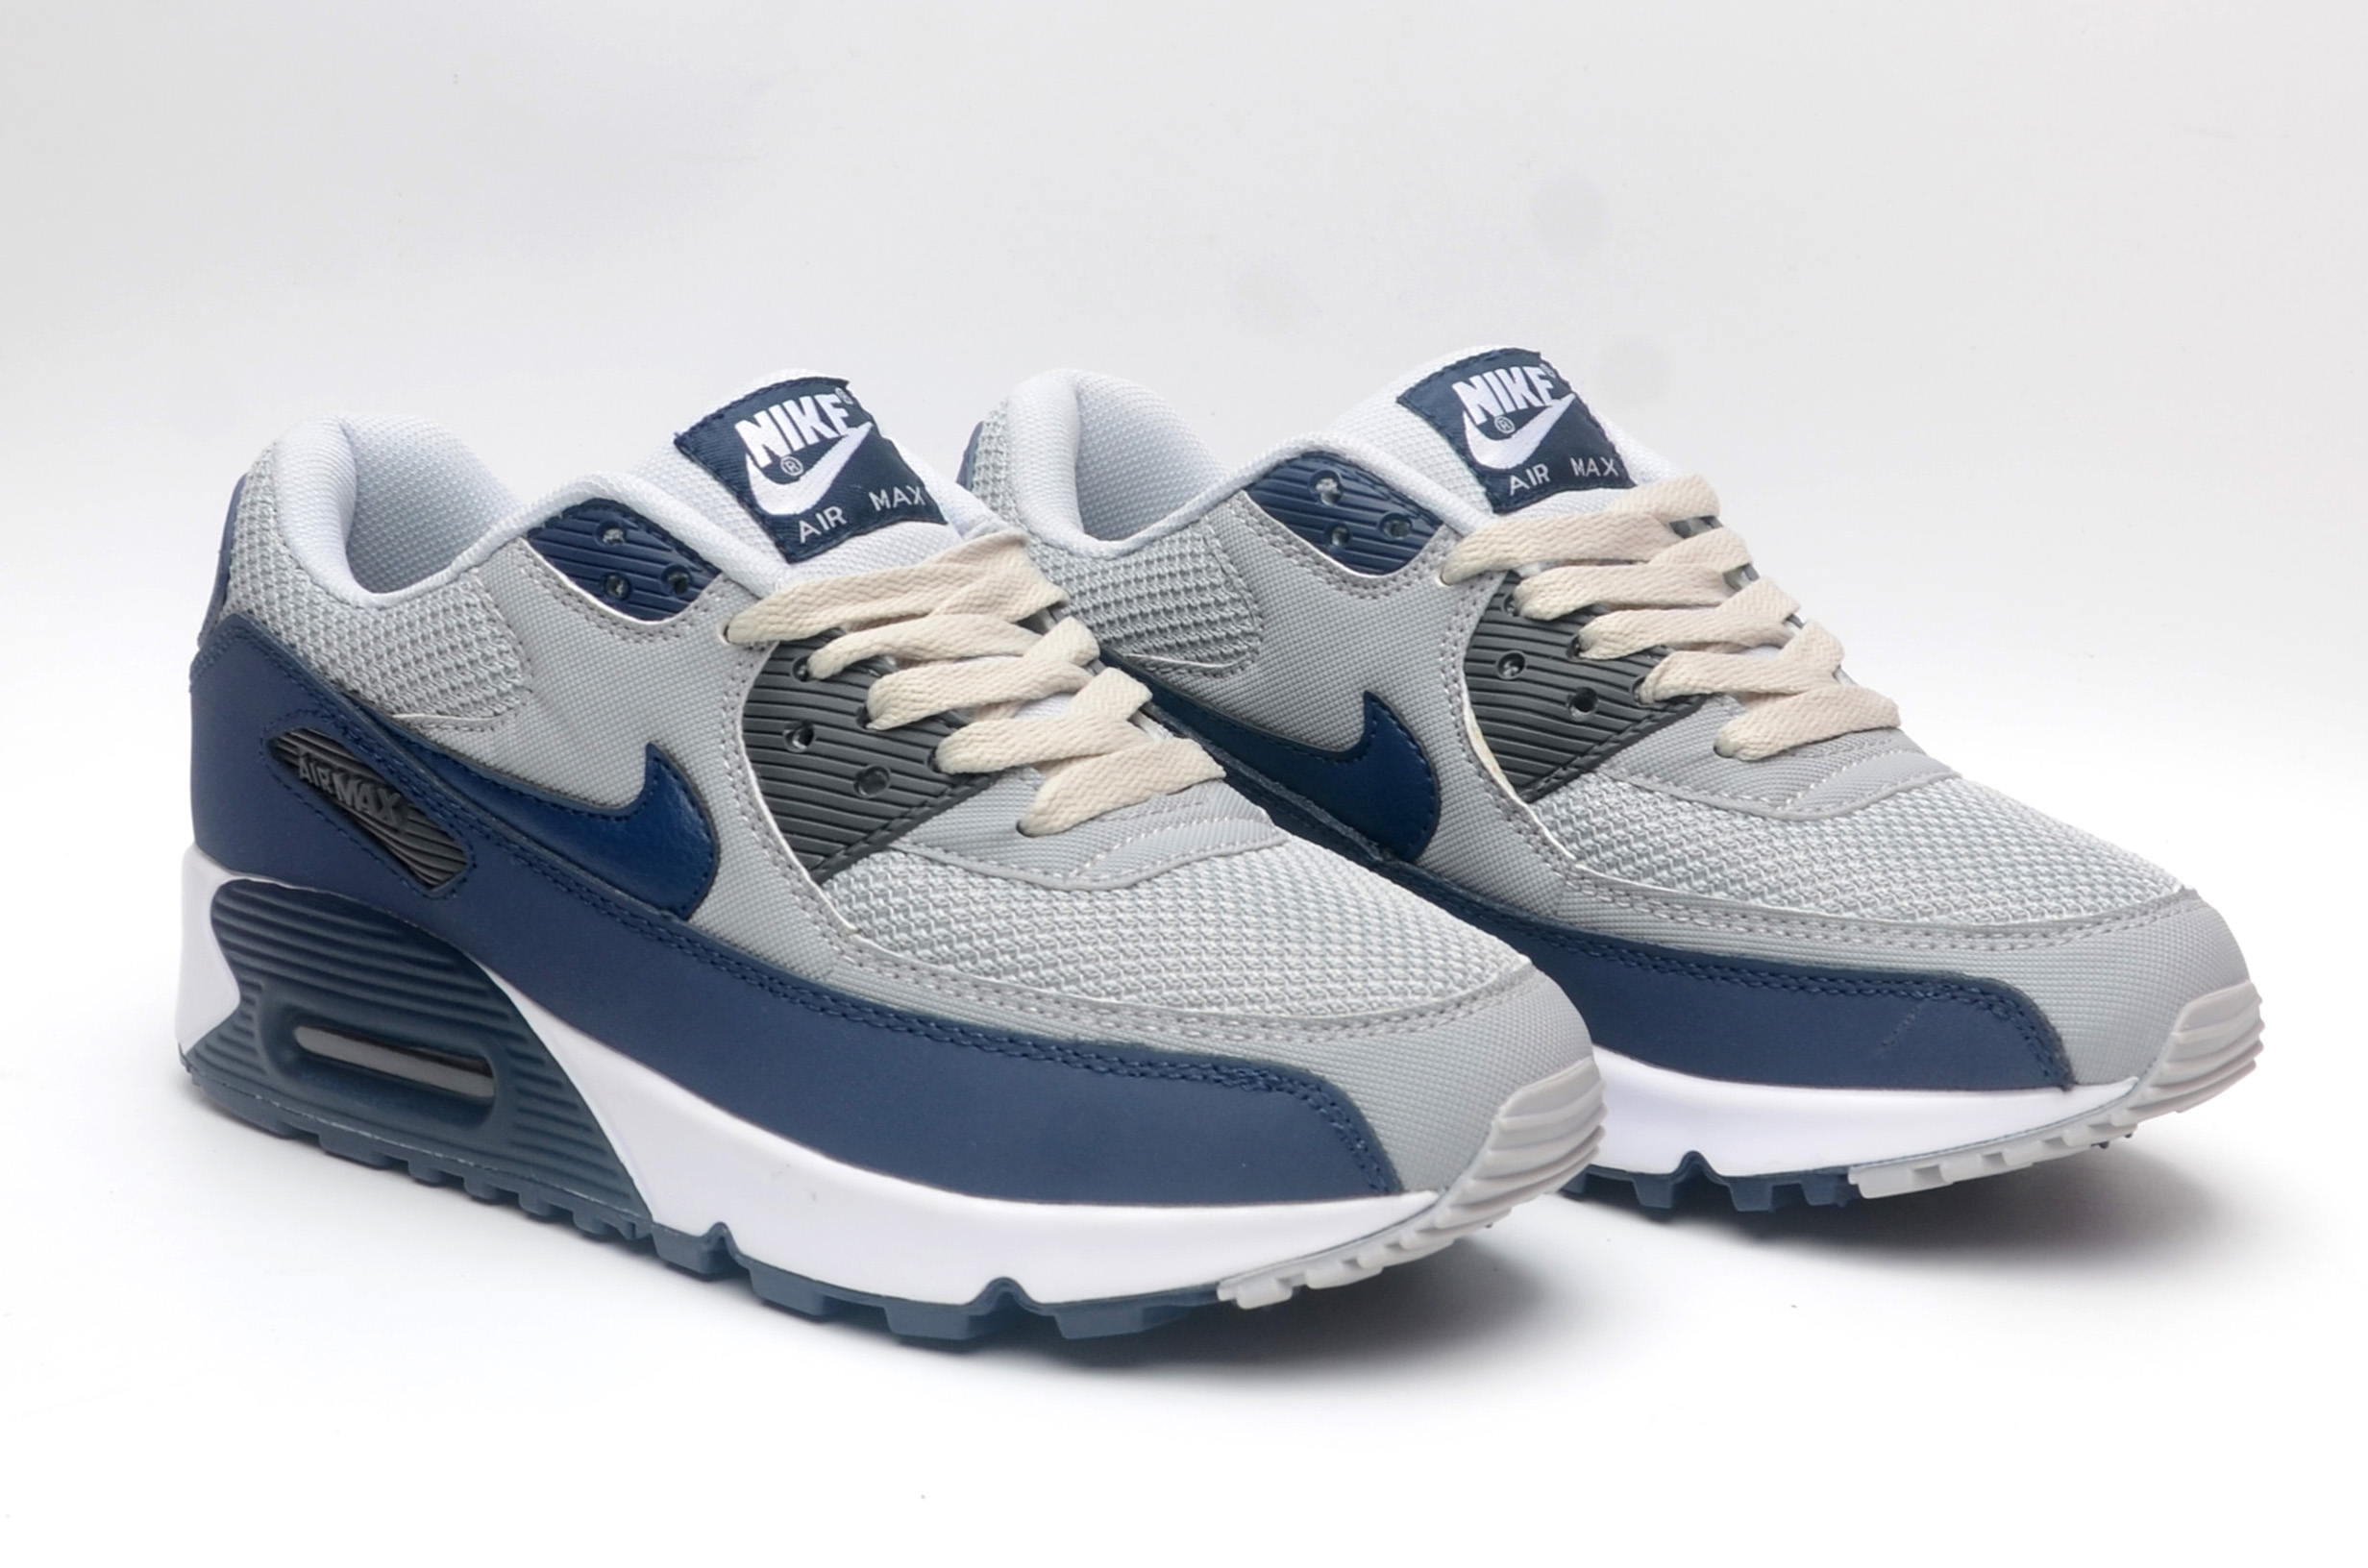 Women's Running weapon Air Max 90 Shoes 029